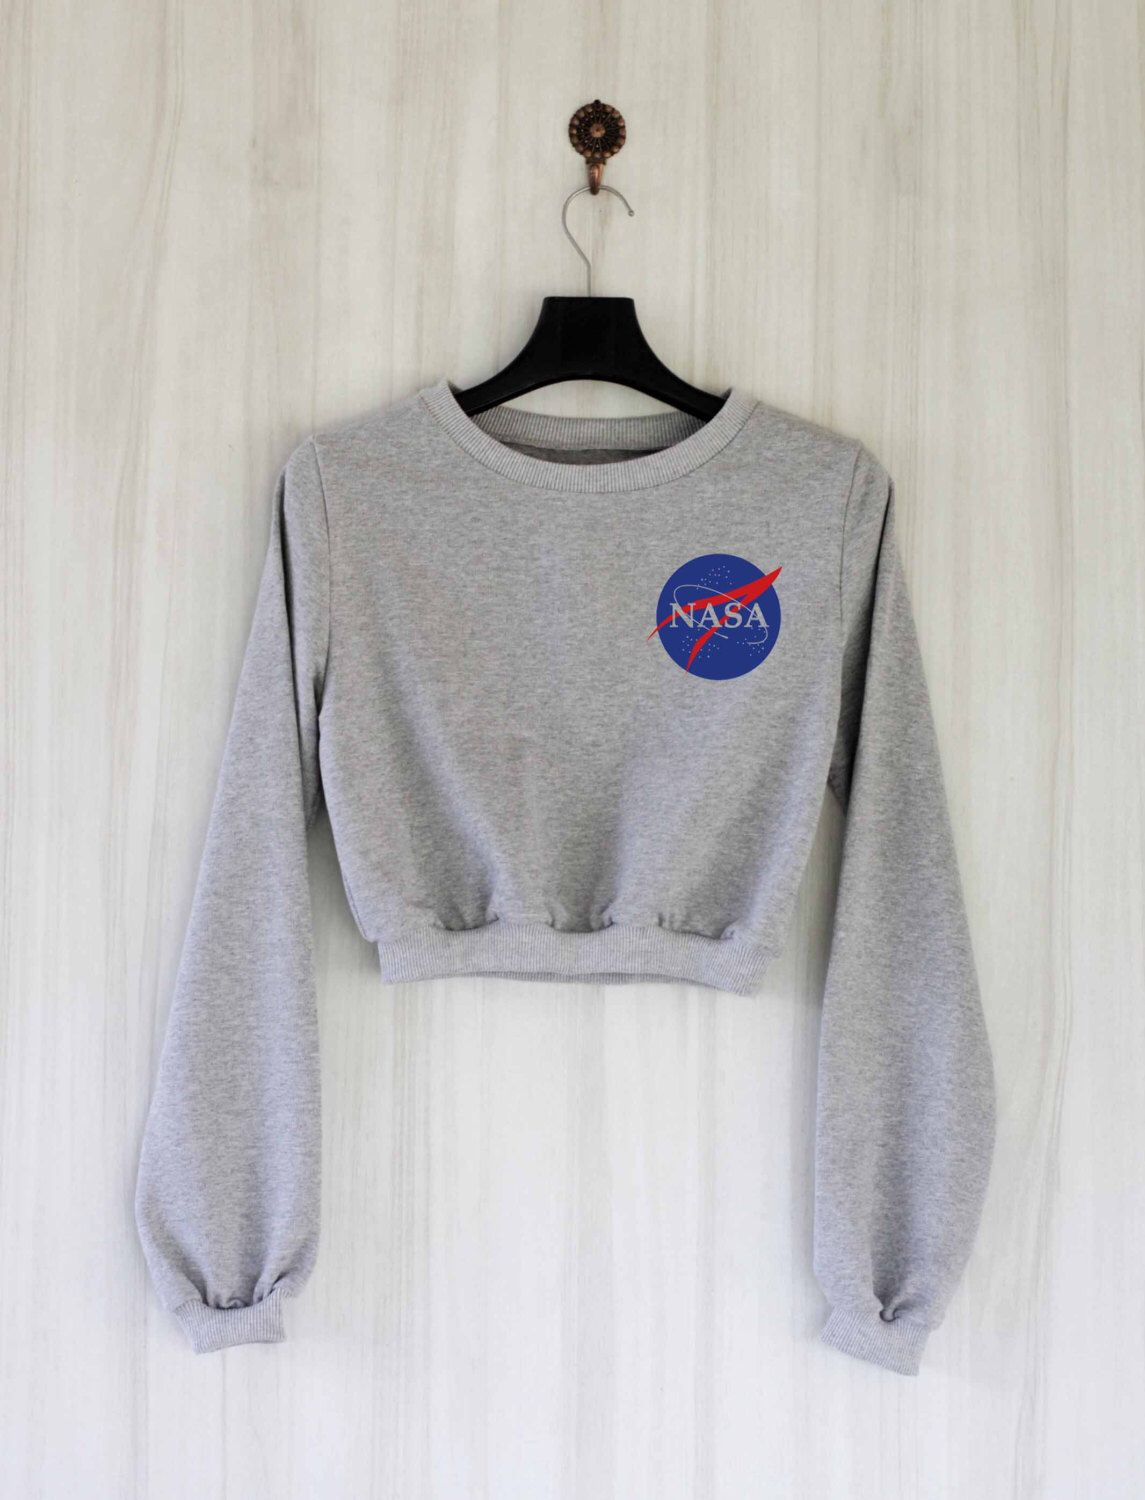 1aa58a525c Nasa Crop Top Sweatshirt Sweater Jumper Pullover Shirt – Size S M L by  SaBuy on Etsy https